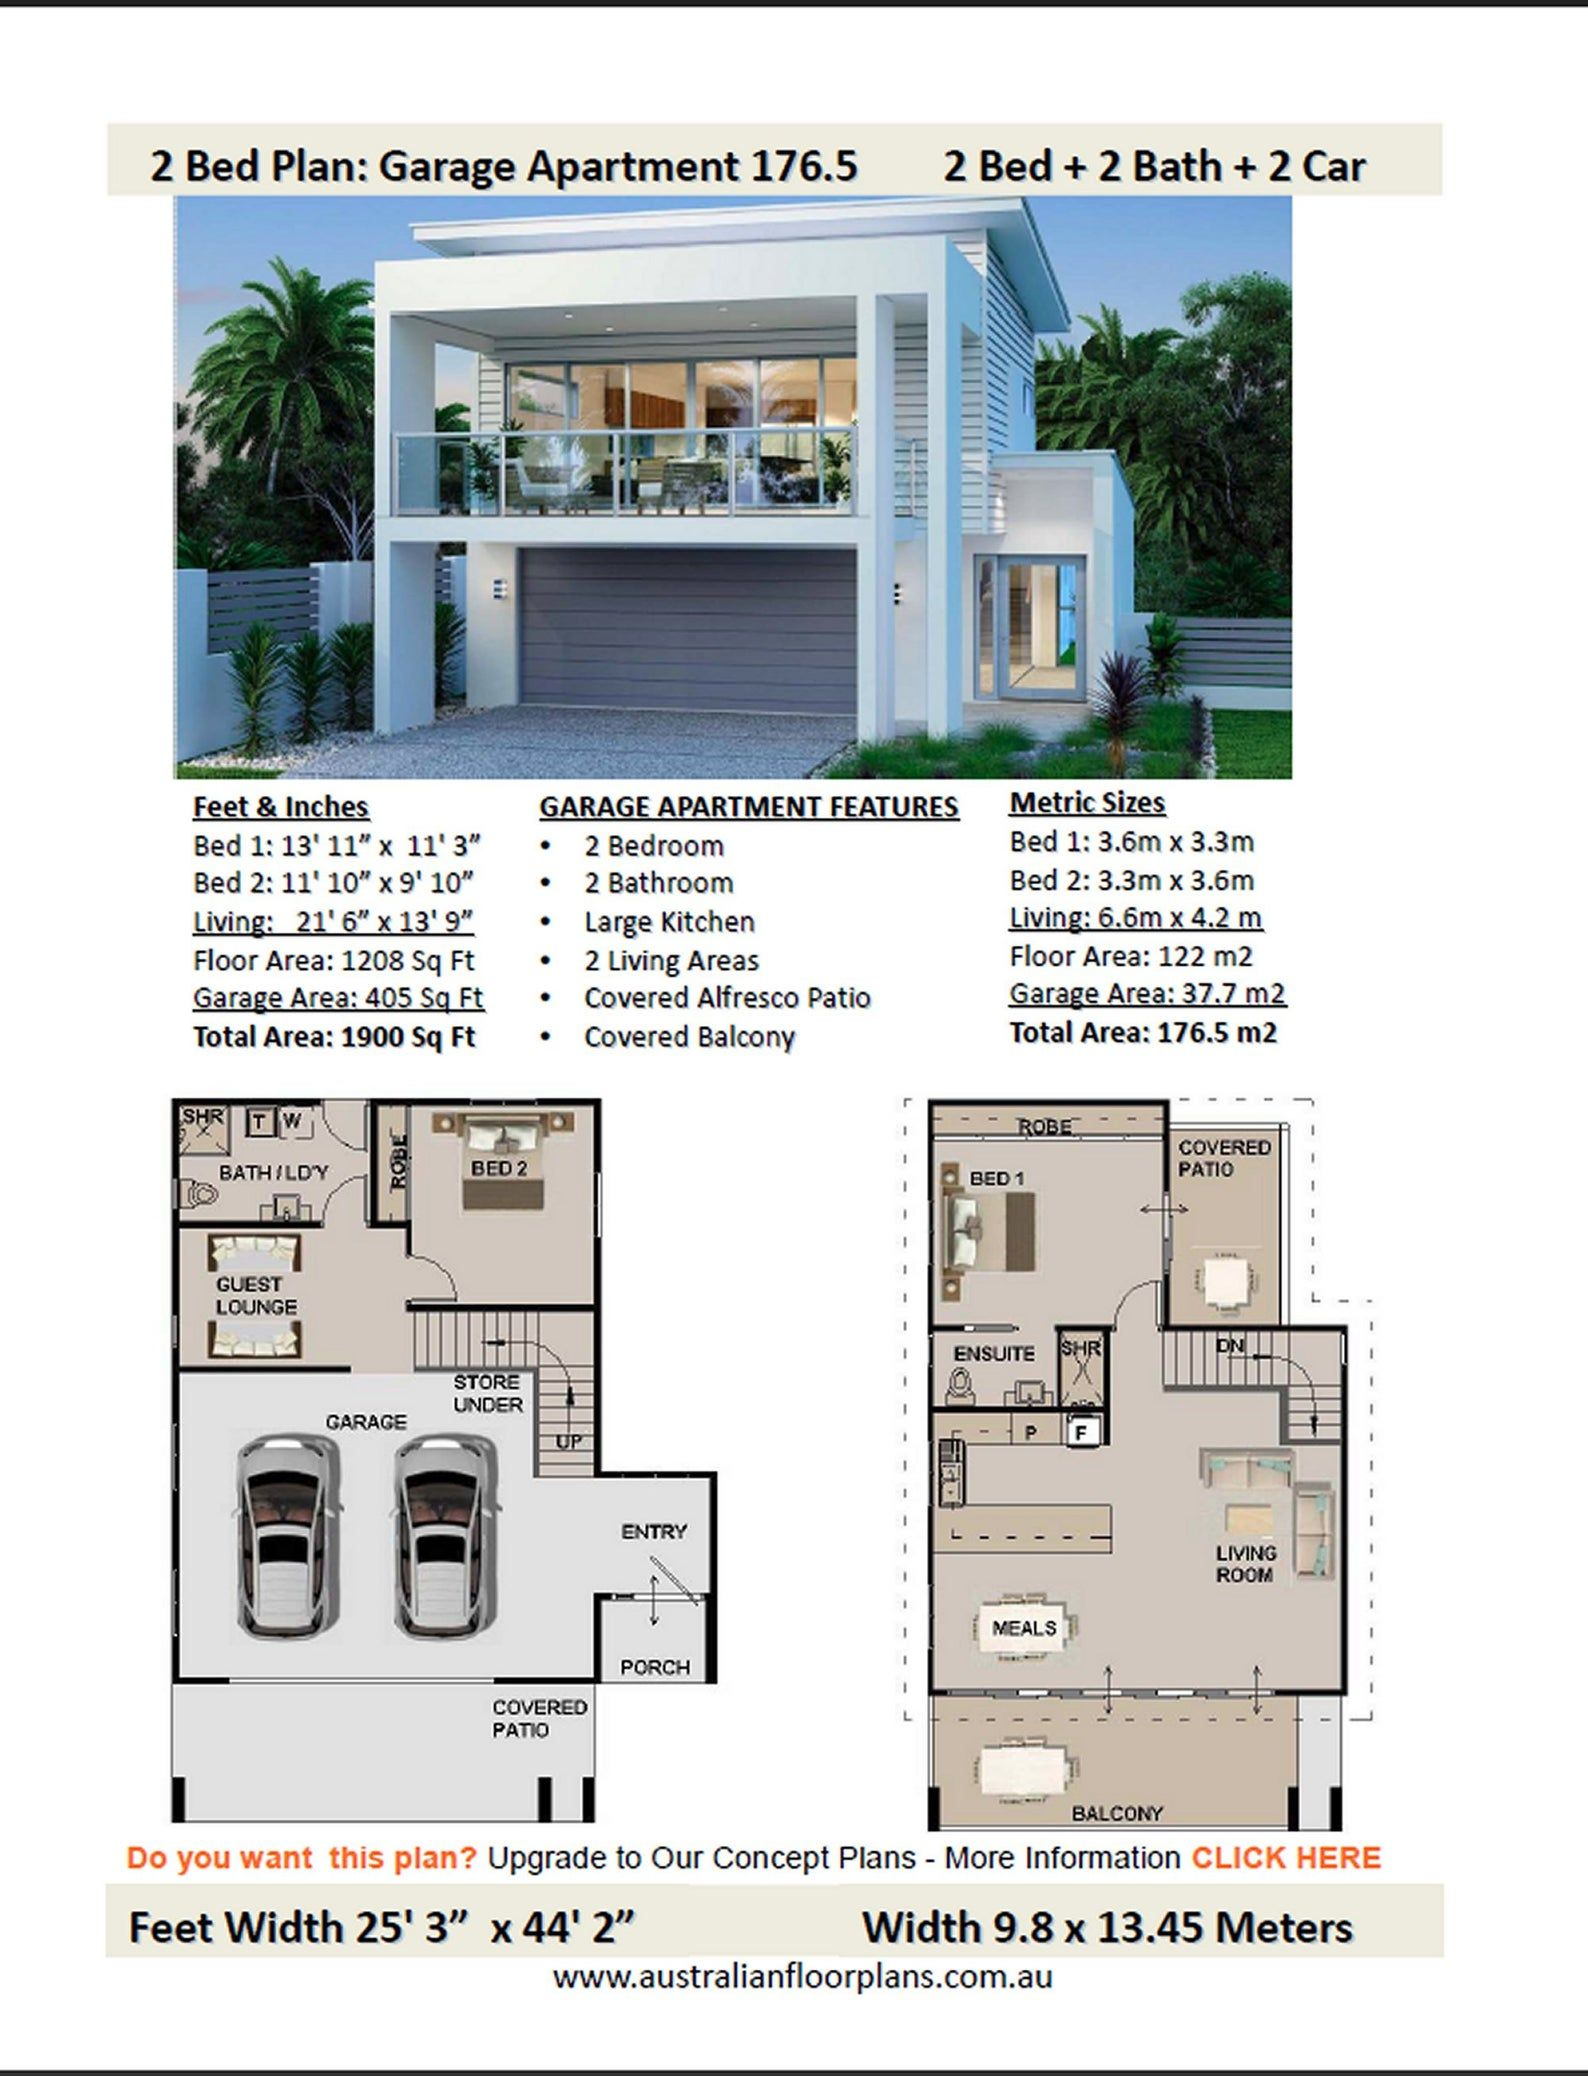 Two Storey House Plans Distinctive Homes Double Storey House Plans Modern Two Storey House Designs 2 Storey House Floor Plans In 2021 Two Storey House Plans Two Storey House House Plans